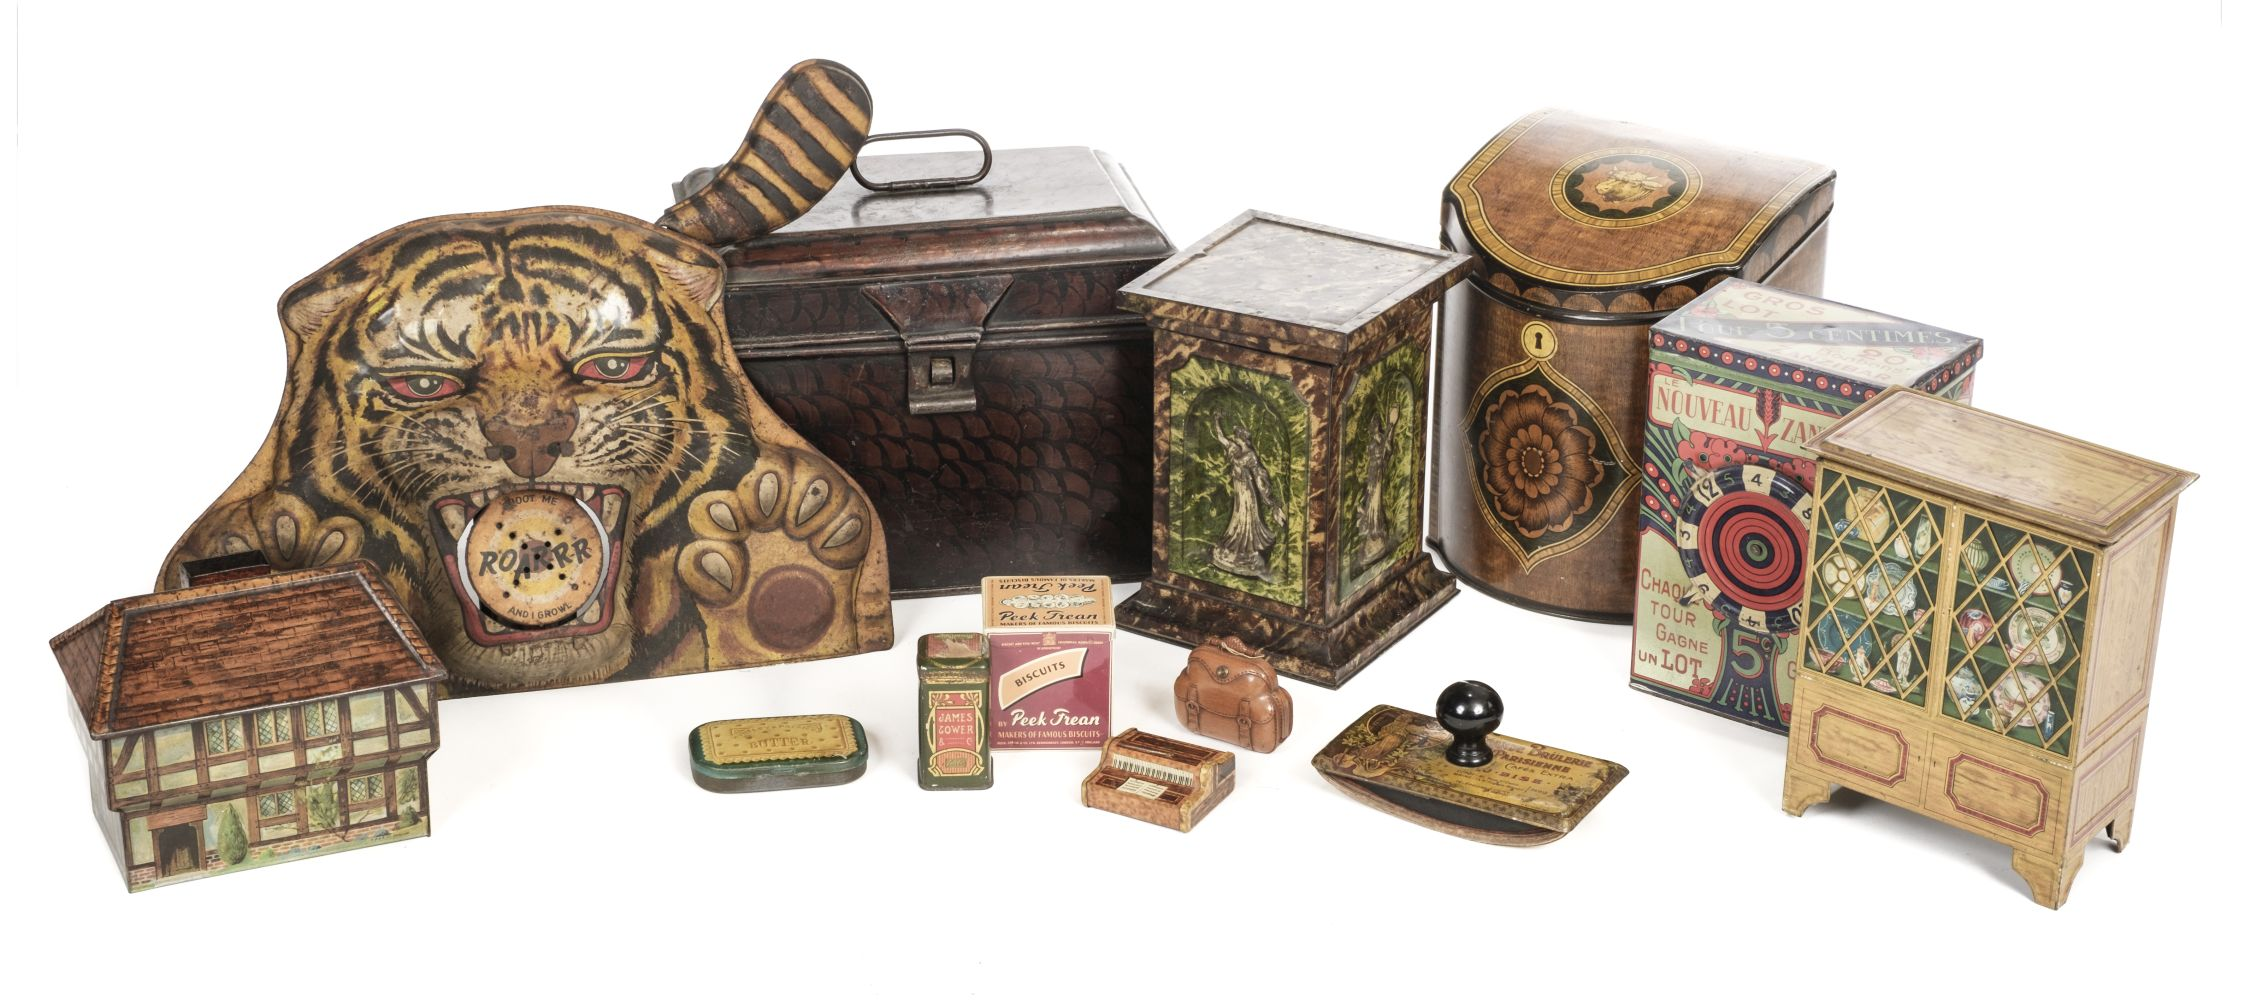 * Advertising Tins. A large collection of tins